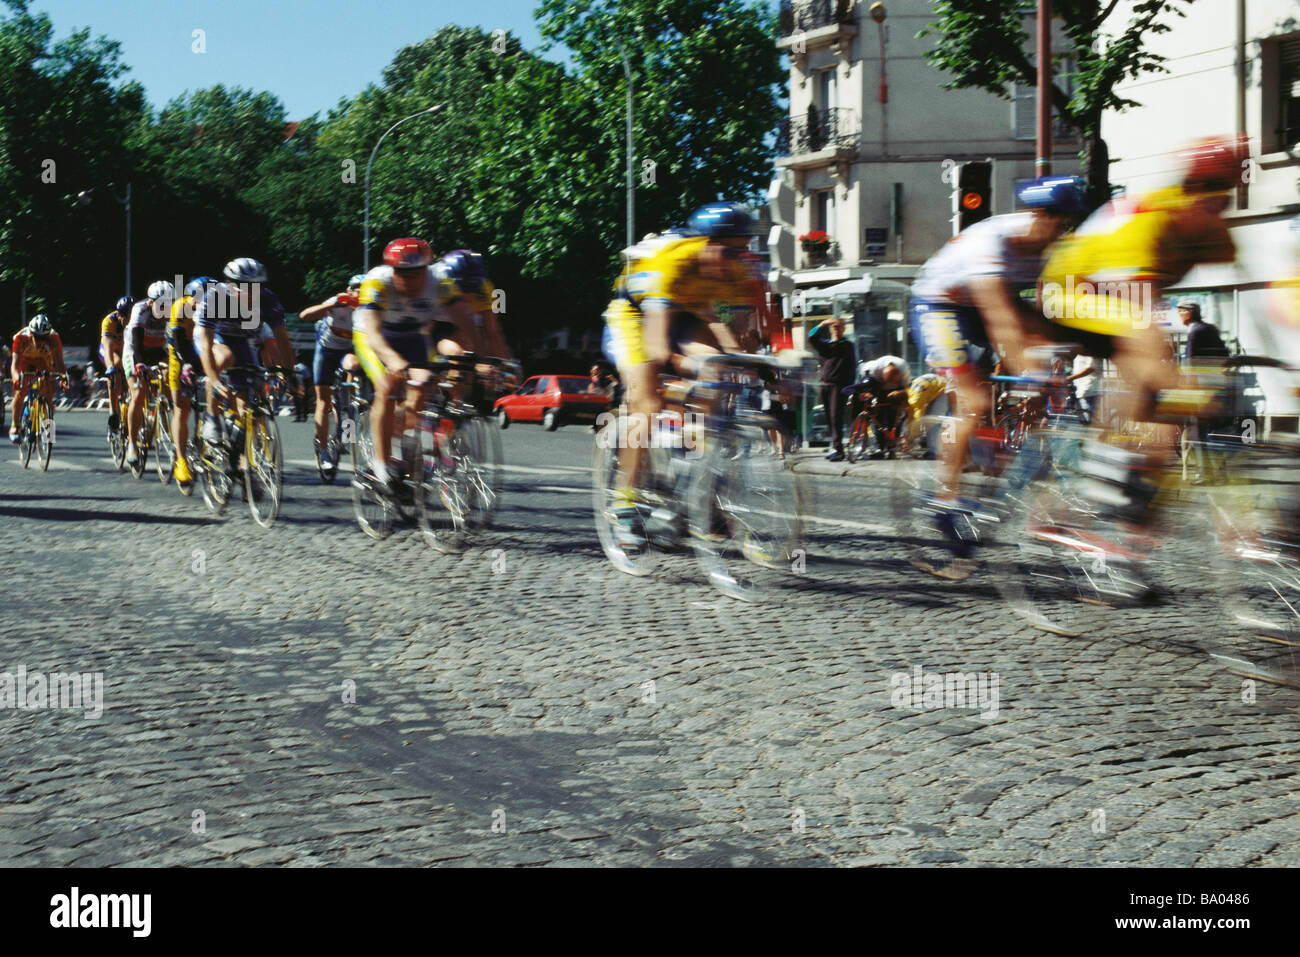 Cyclists racing on cobblestone street - Stock Image